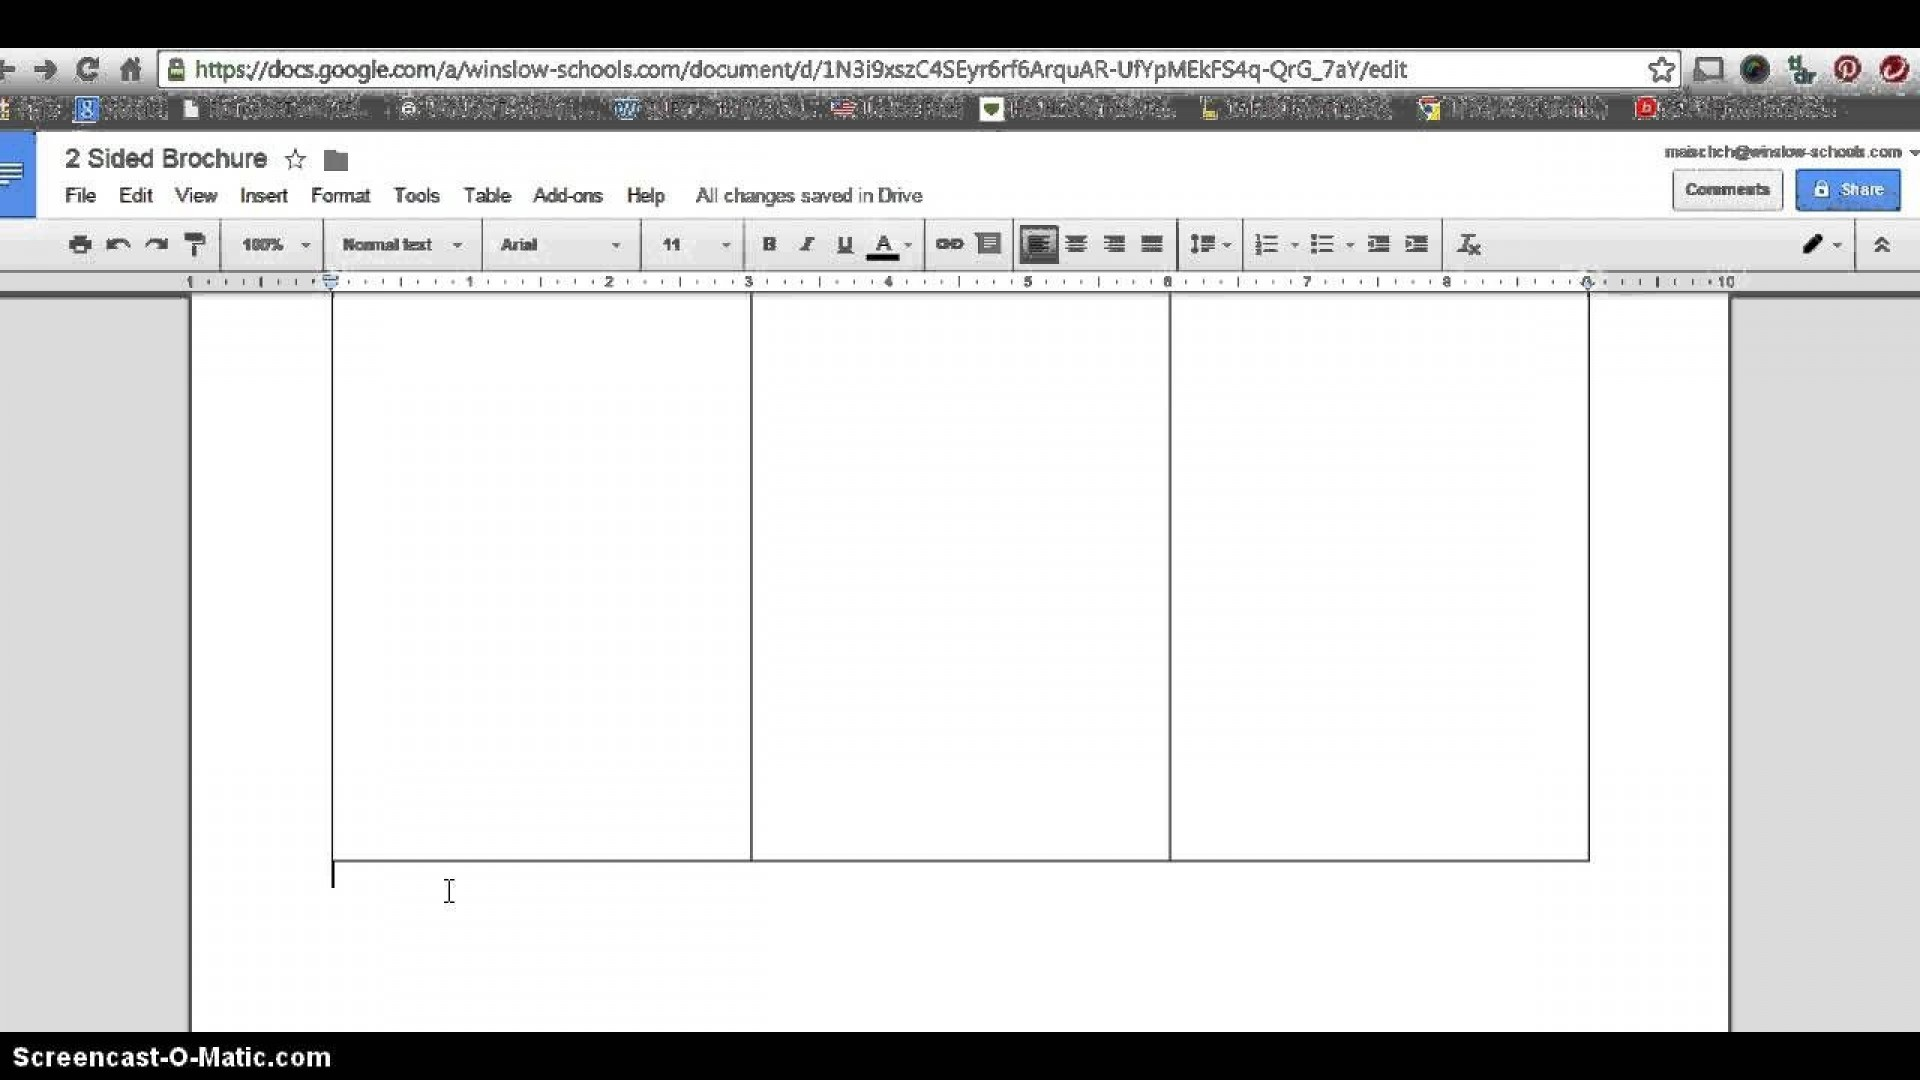 007 Archaicawful Three Fold Brochure Template Google Doc Concept  Docs1920